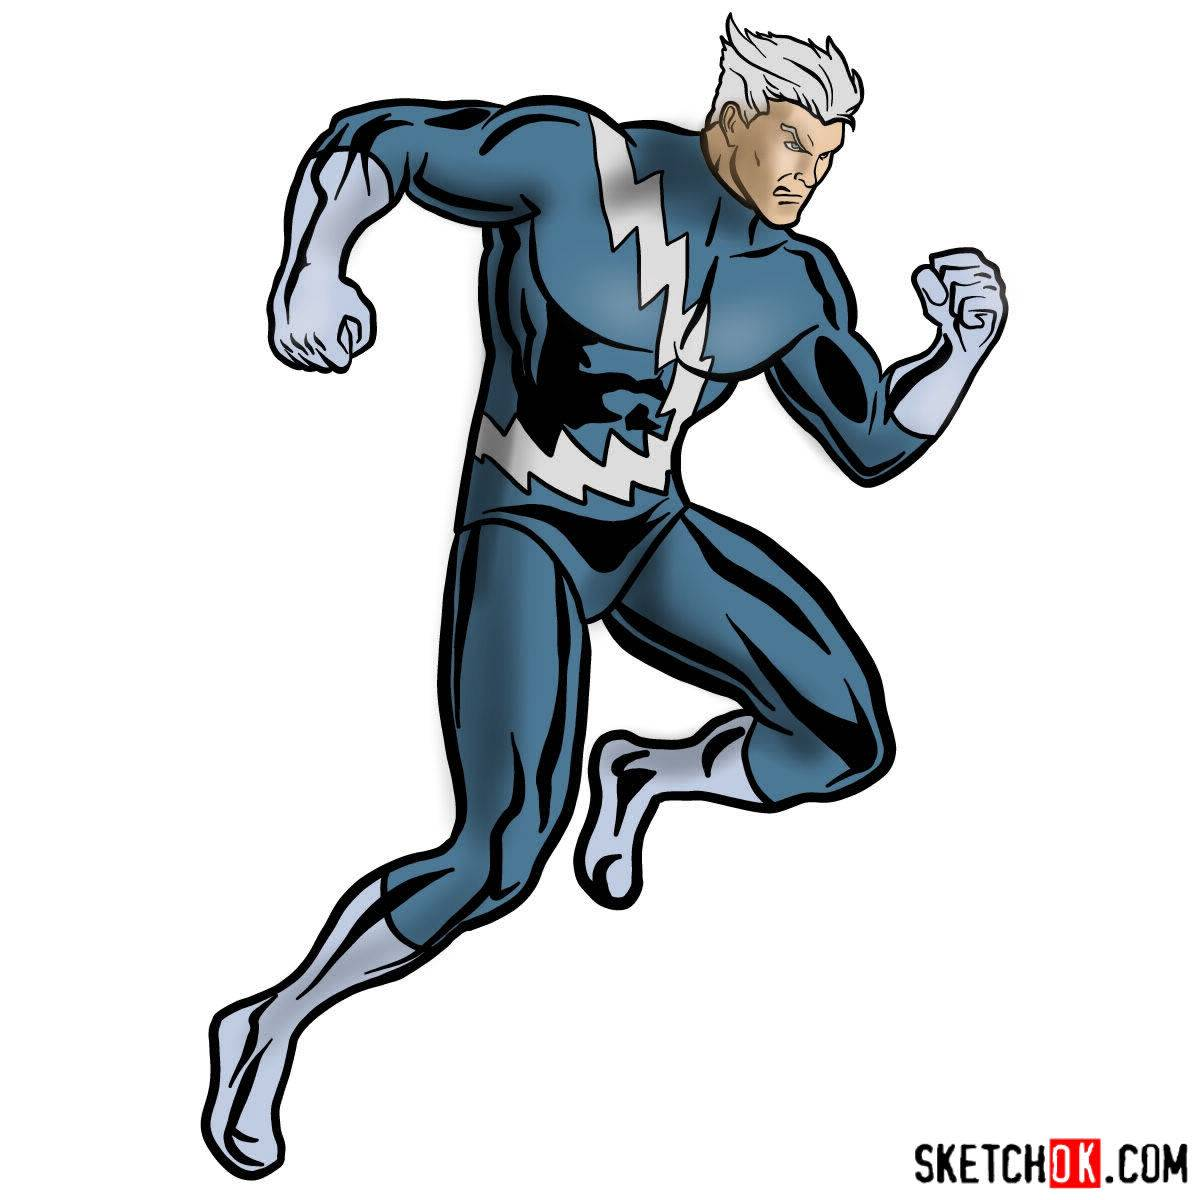 How to draw Quicksilver from Marvel Comics